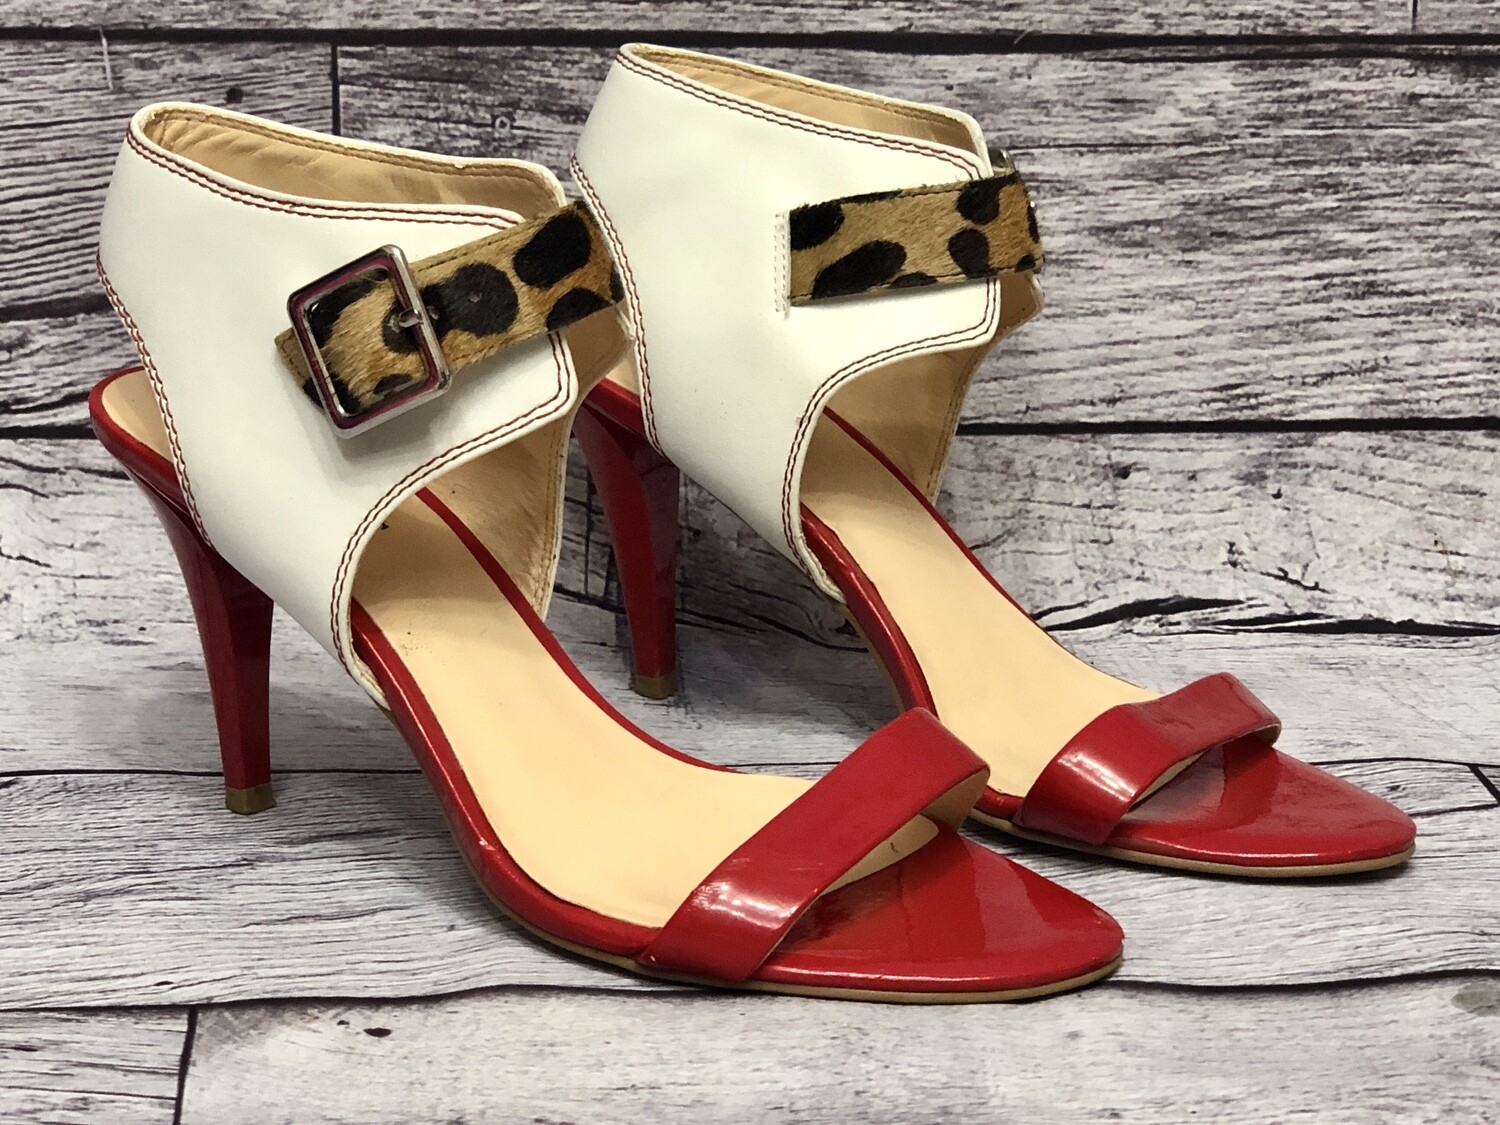 GUESS Red, White & Leopard Strap Sandal Heels size 6 1/2